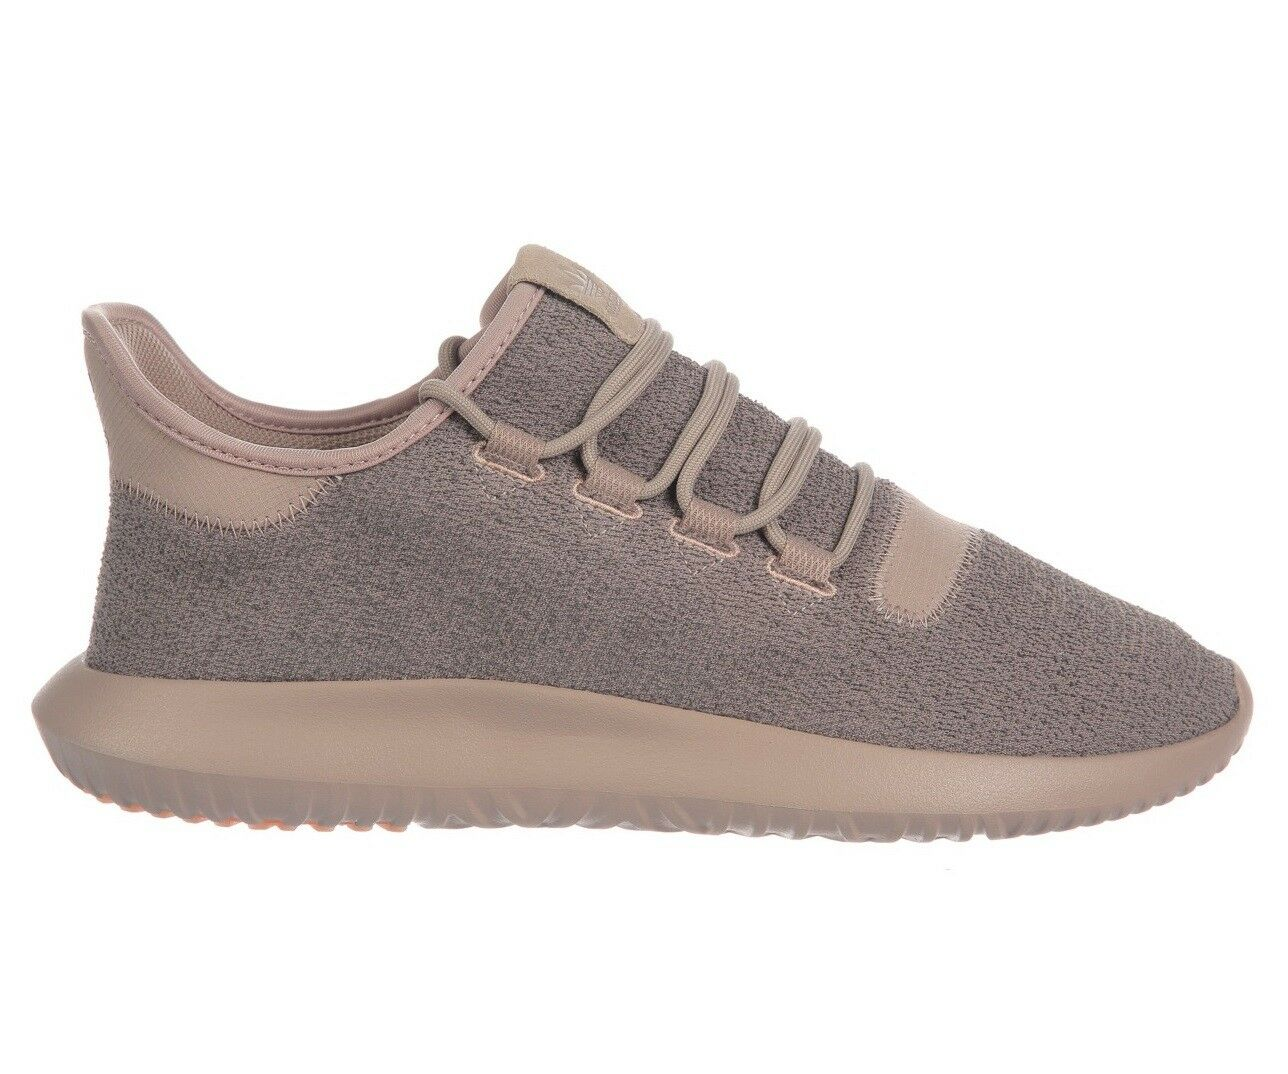 Adidas Tubular Shadow Mens BY3574 Vapour Grey Raw Pink Athletic Shoes Size 13